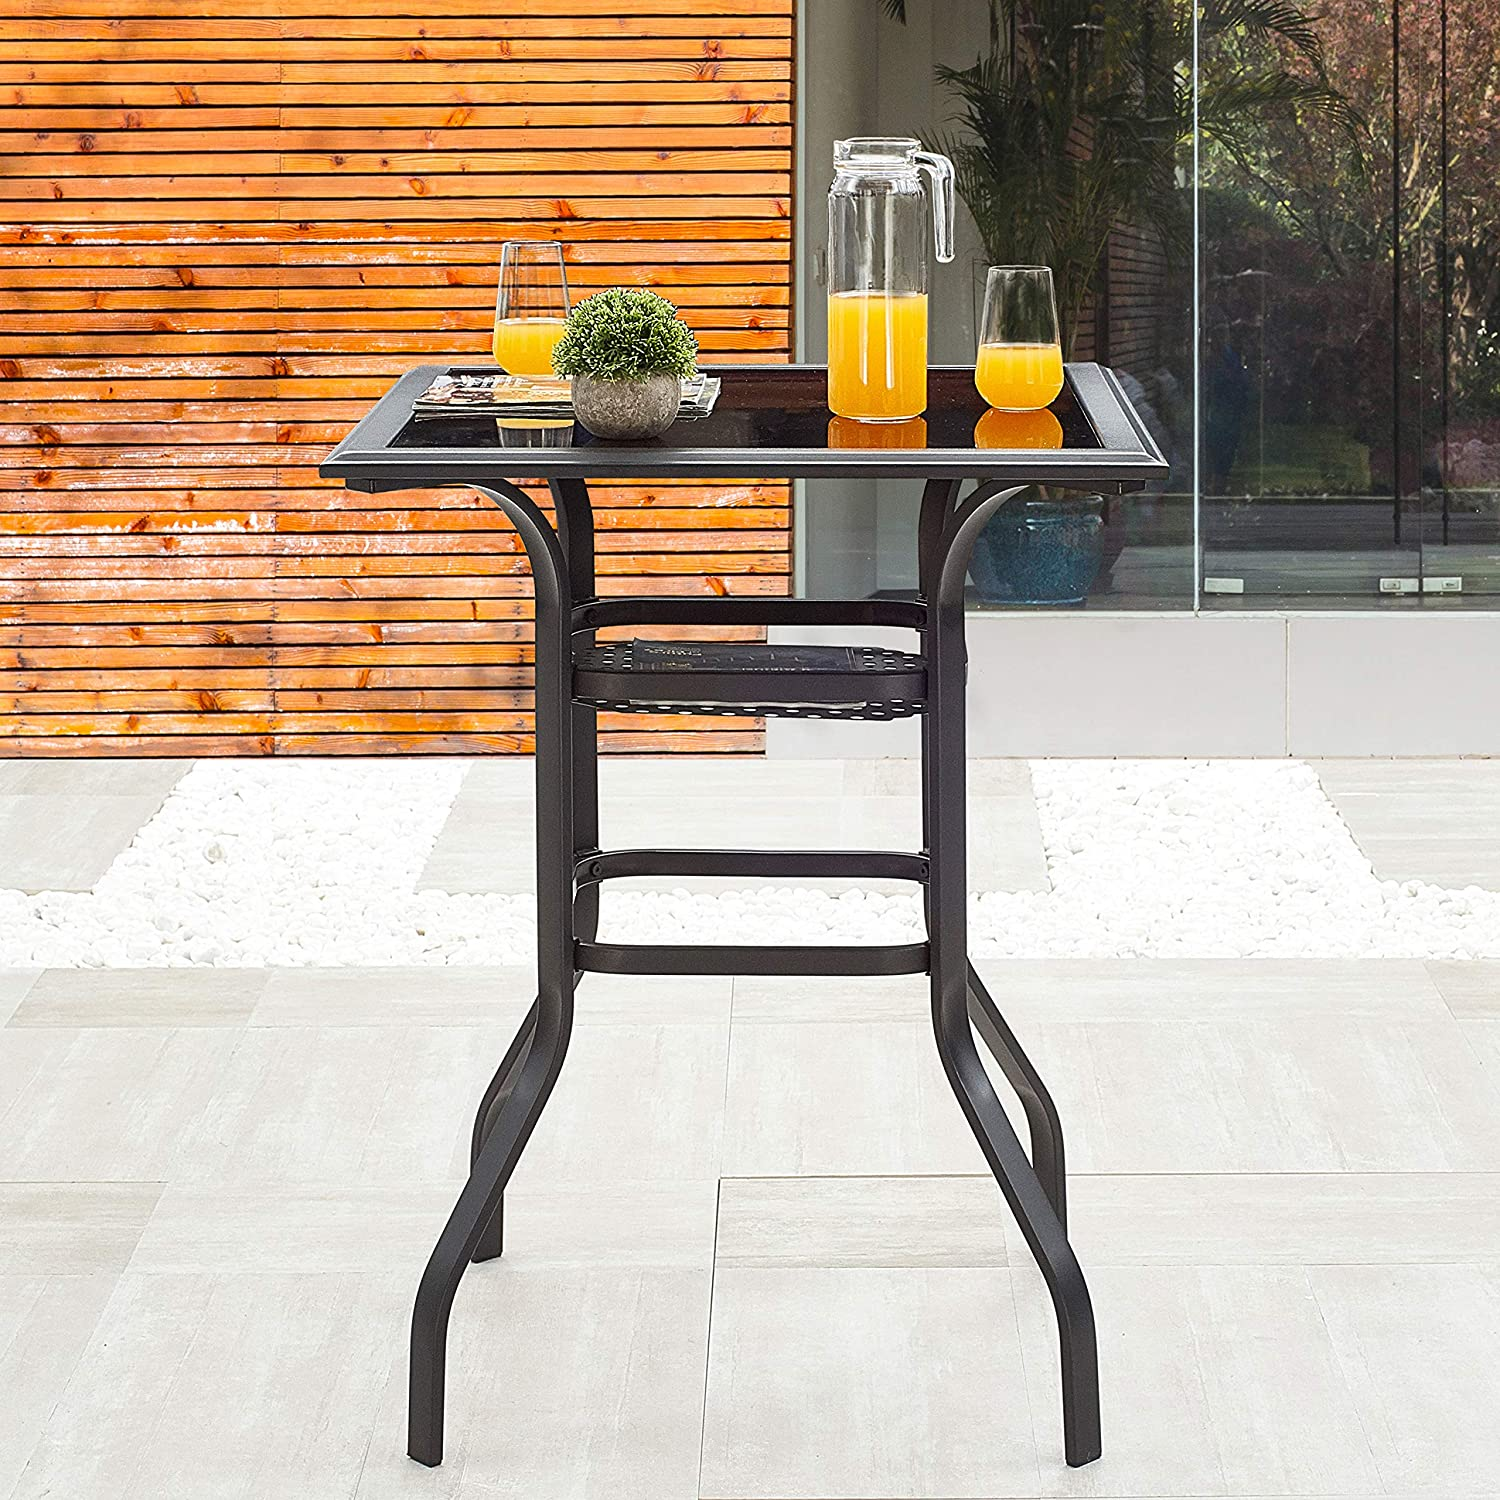 LOKATSE HOME Patio Bar Height Outdoor Table Bistro Square Outside High Top with 2-Tier Metal Frame (27.6